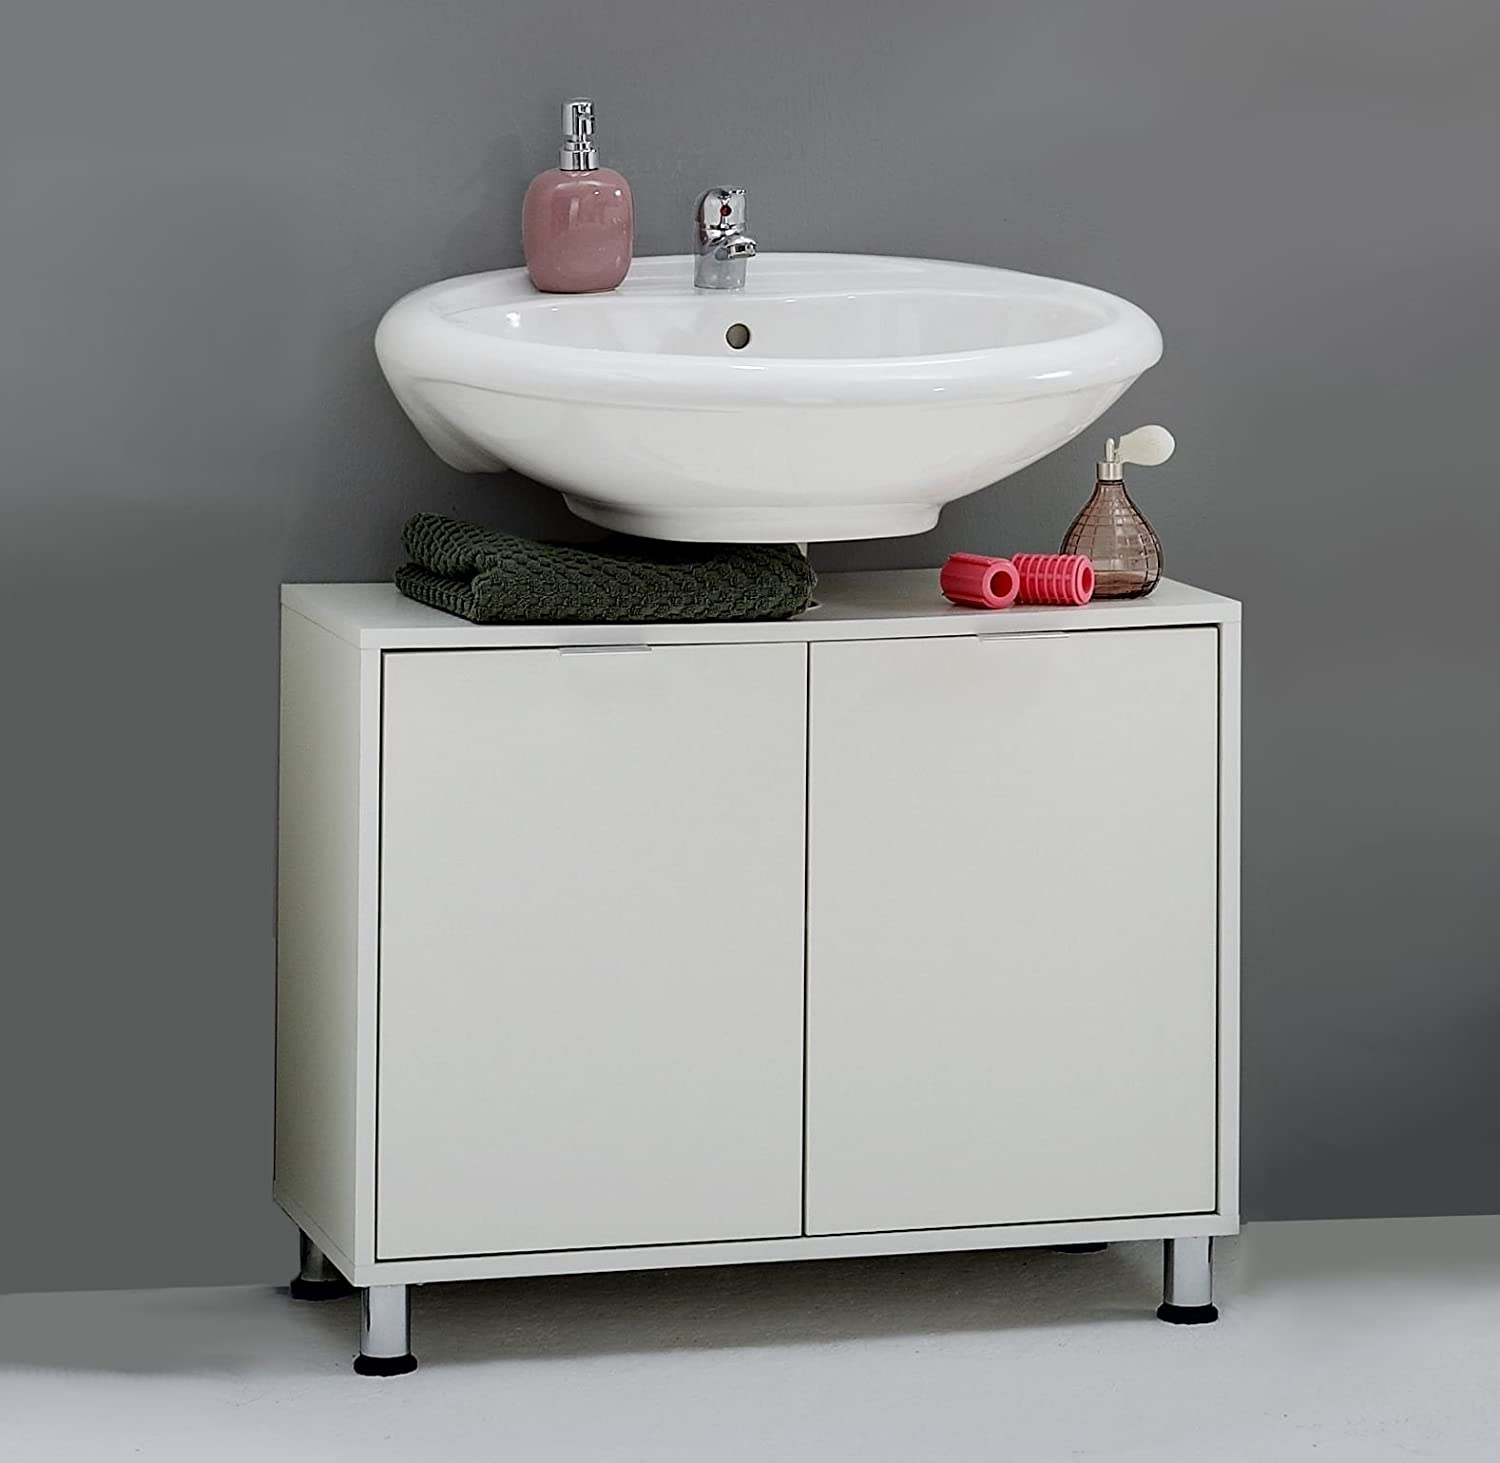 ZUMA Premium Under Sink Bathroom Vanity Storage Cupboard Cabinet